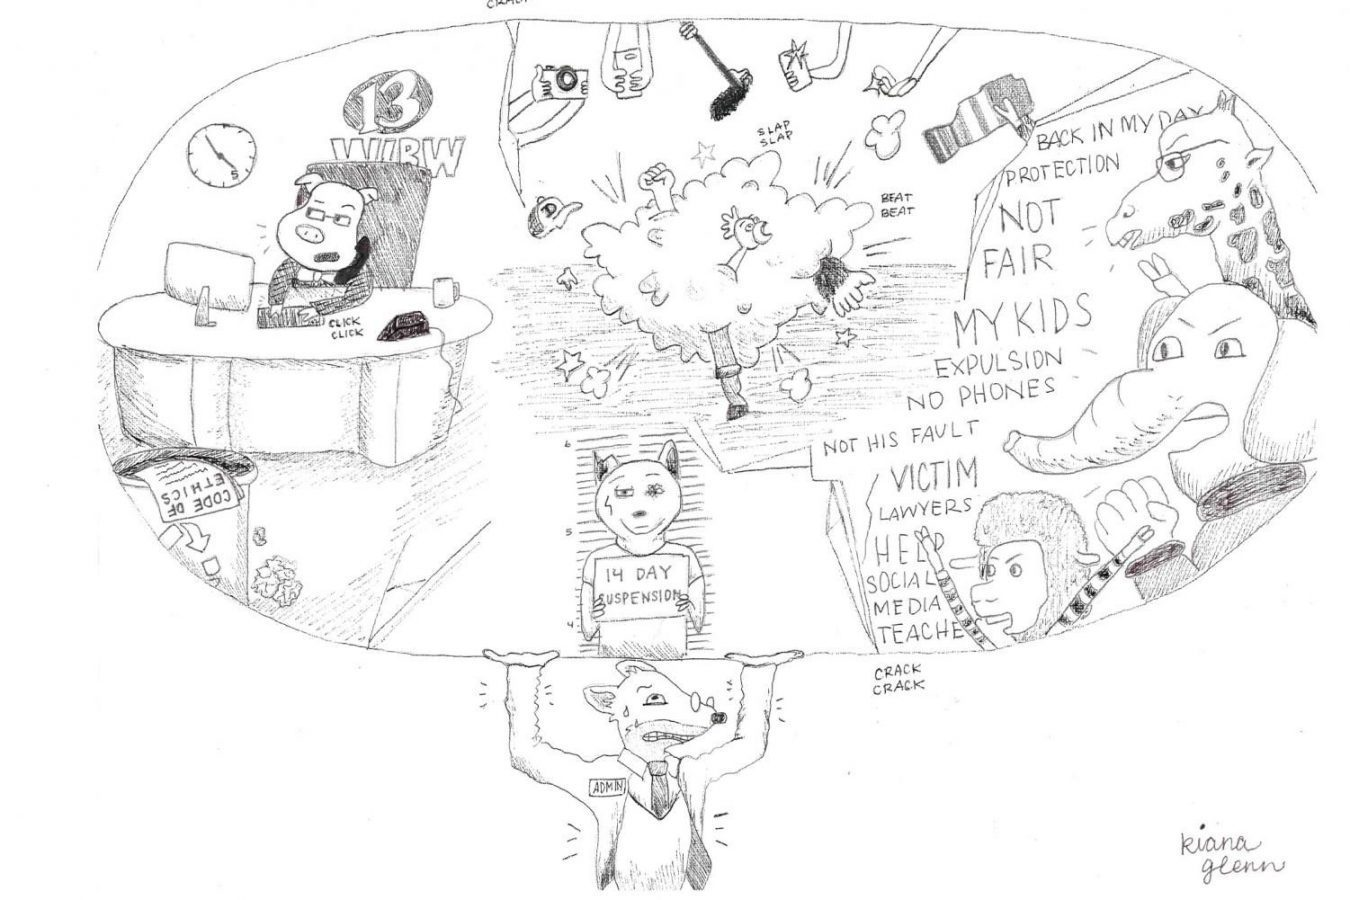 Staff member Kiana Glenn created this political cartoon in response with the recent controversy surrounding the fighting. It shows the struggles the administration deals with in managing the social media, reasonable punishments for the students caught fighting or filming, and the angry backlash of parents and students. Facebook and other social media platforms have played a big role in the situation.